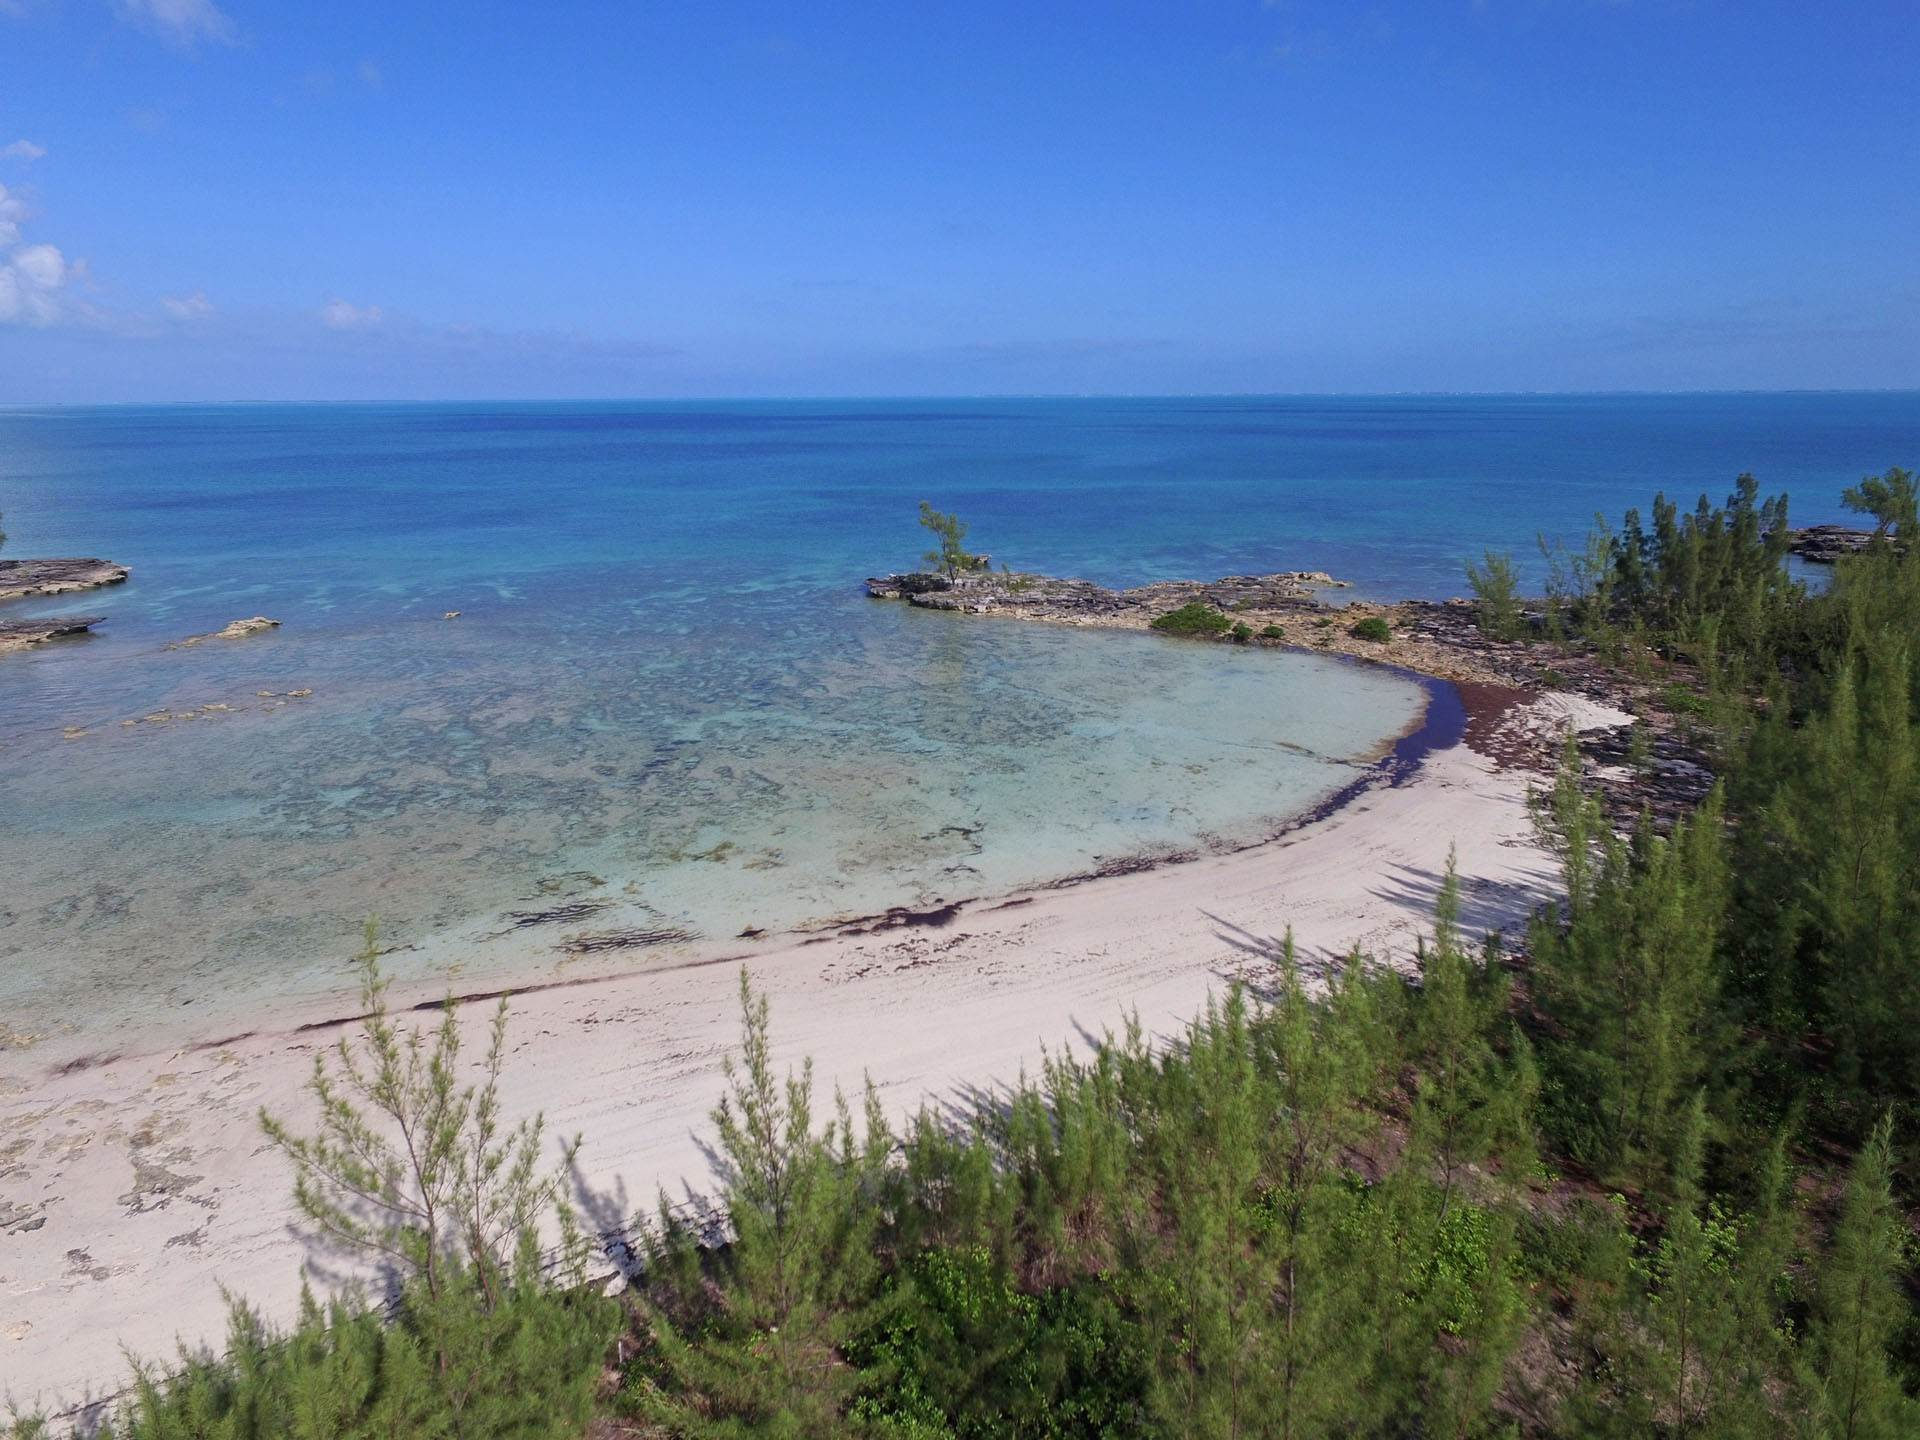 Land for Sale at 2.257 Waterfront Acres, Central Abaco Island - Cabbage Point Parcel 2 (MLS #28732) Turtle Rocks, Abaco, Bahamas